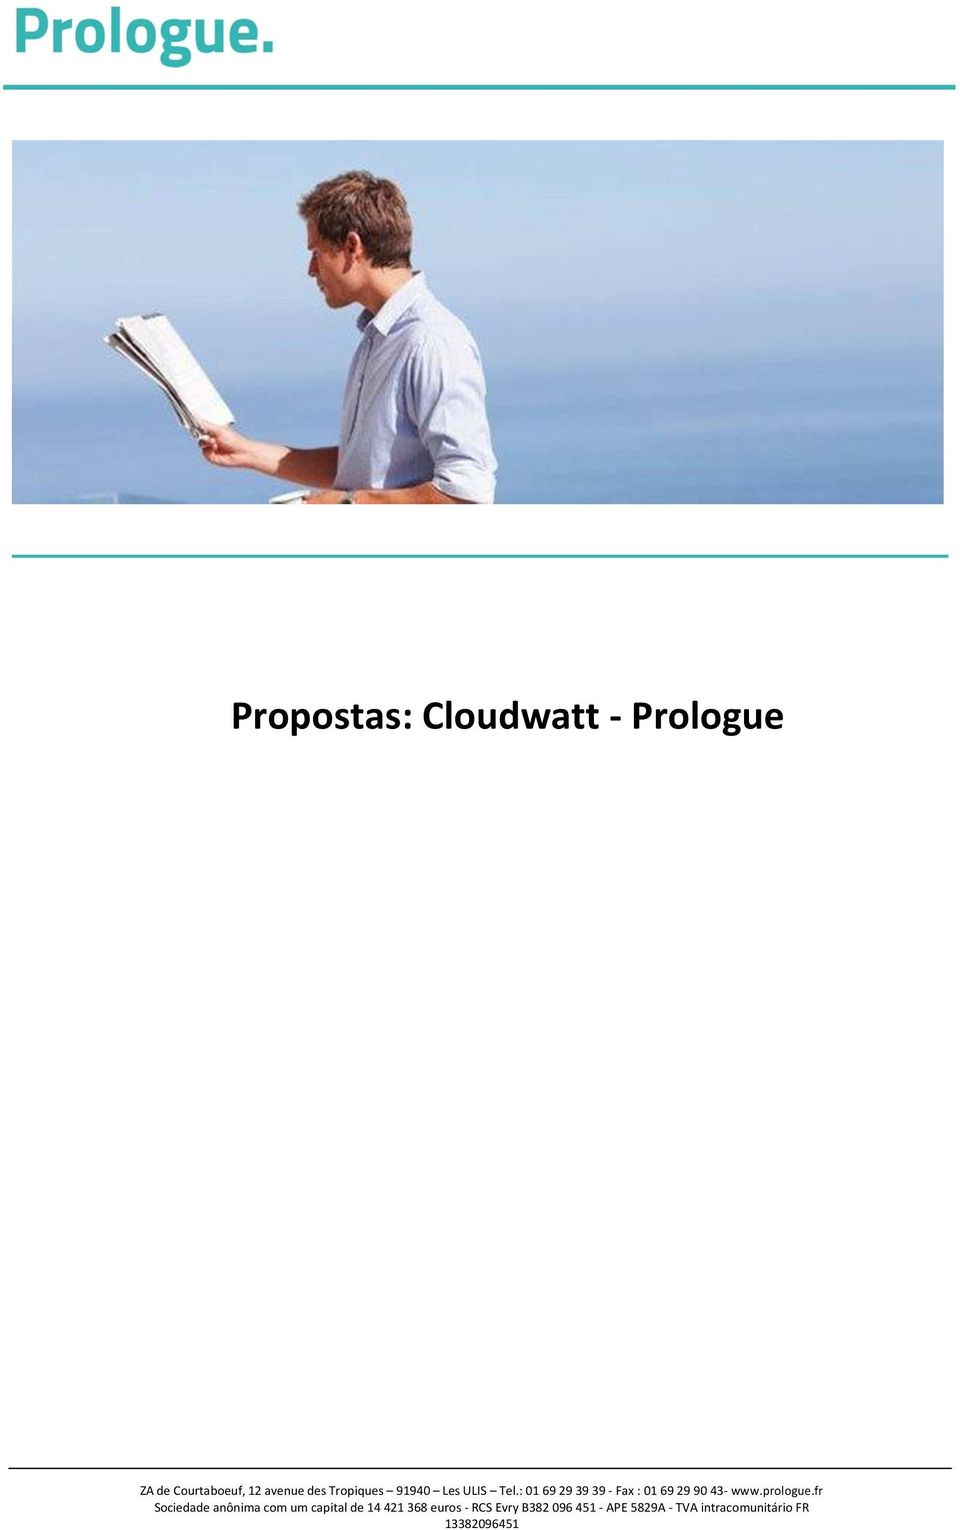 : 01 69 29 39 39 - Fax : 01 69 29 90 43- www.prologue.